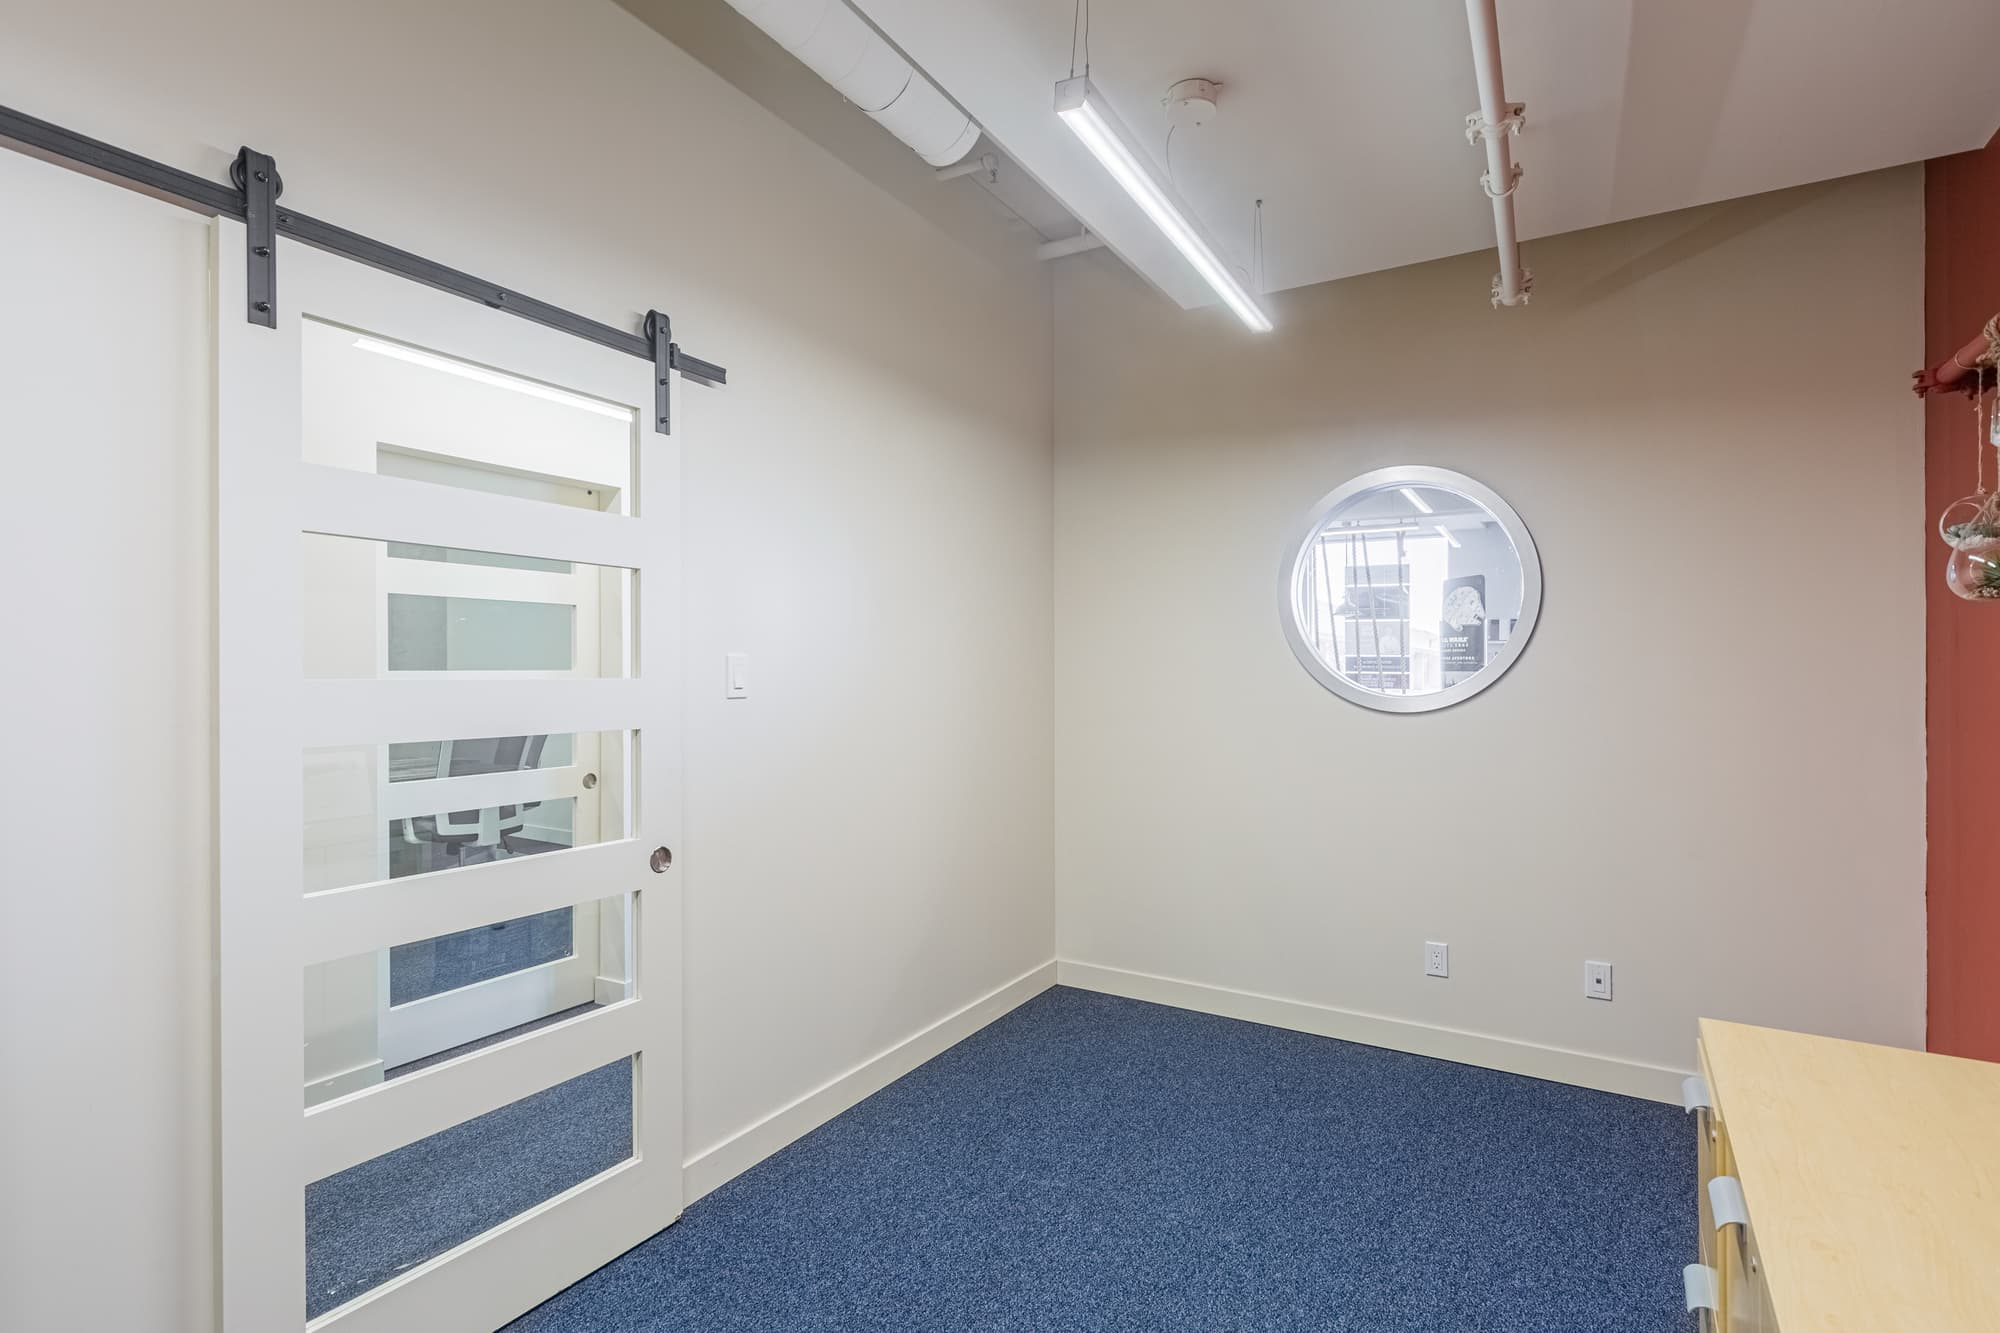 commercial remodeling with a blue carpet and white door